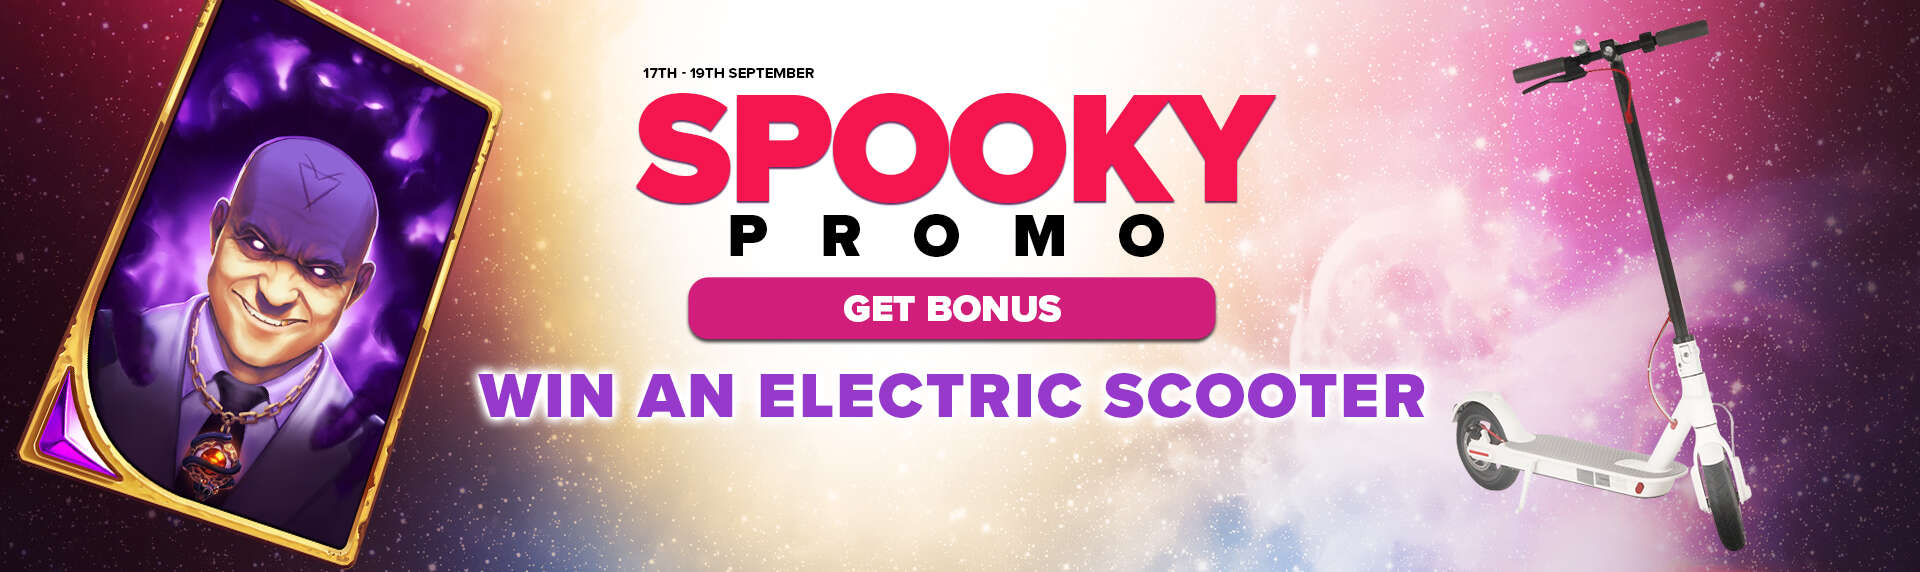 next-casino-spooky-promo